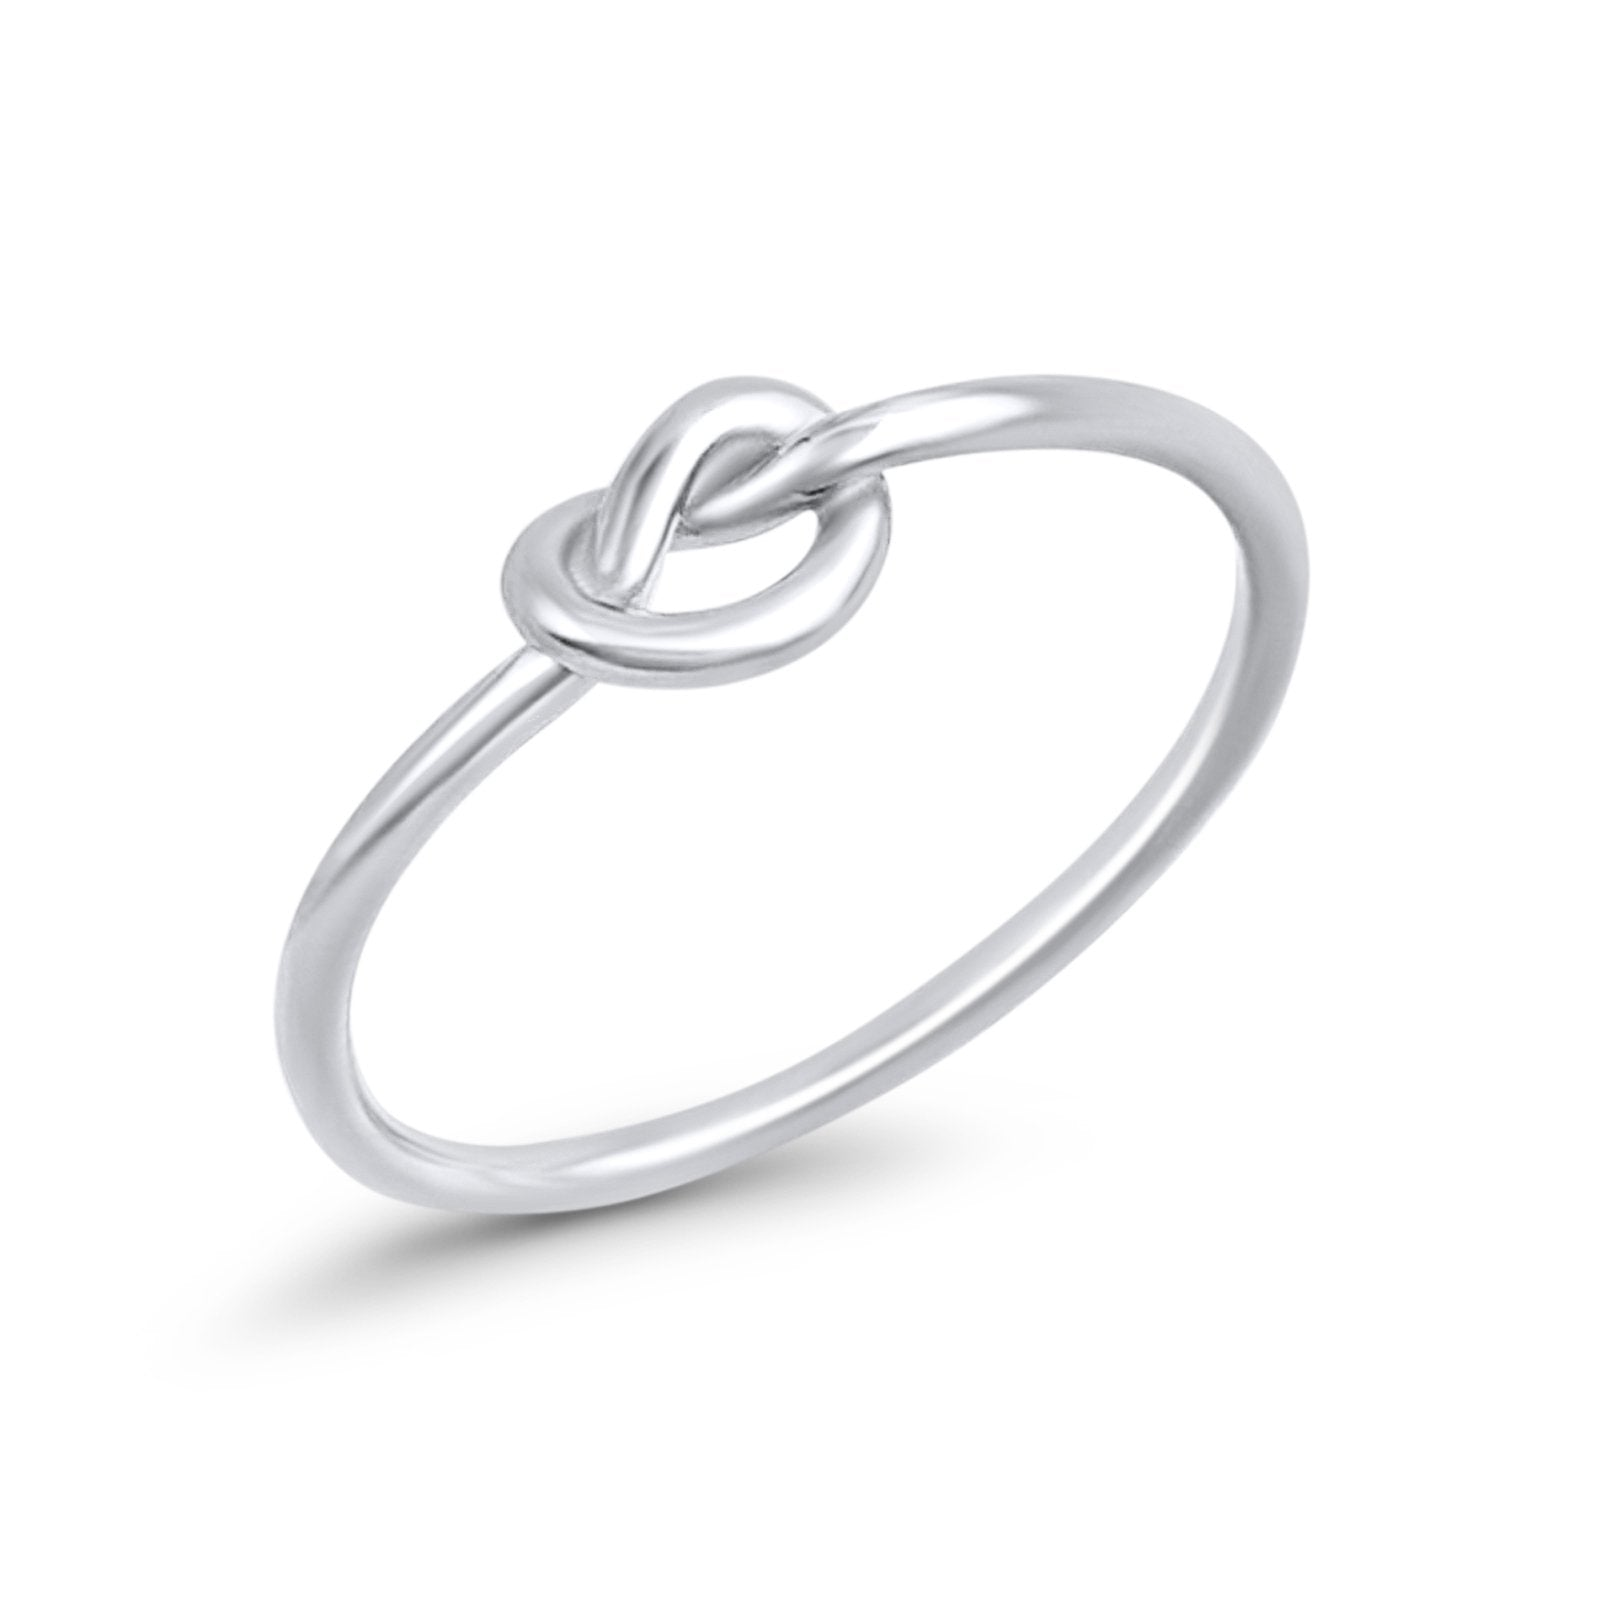 Tangled Love Knot Heart Ring Band Promise Plain Ring 925 Sterling Silver